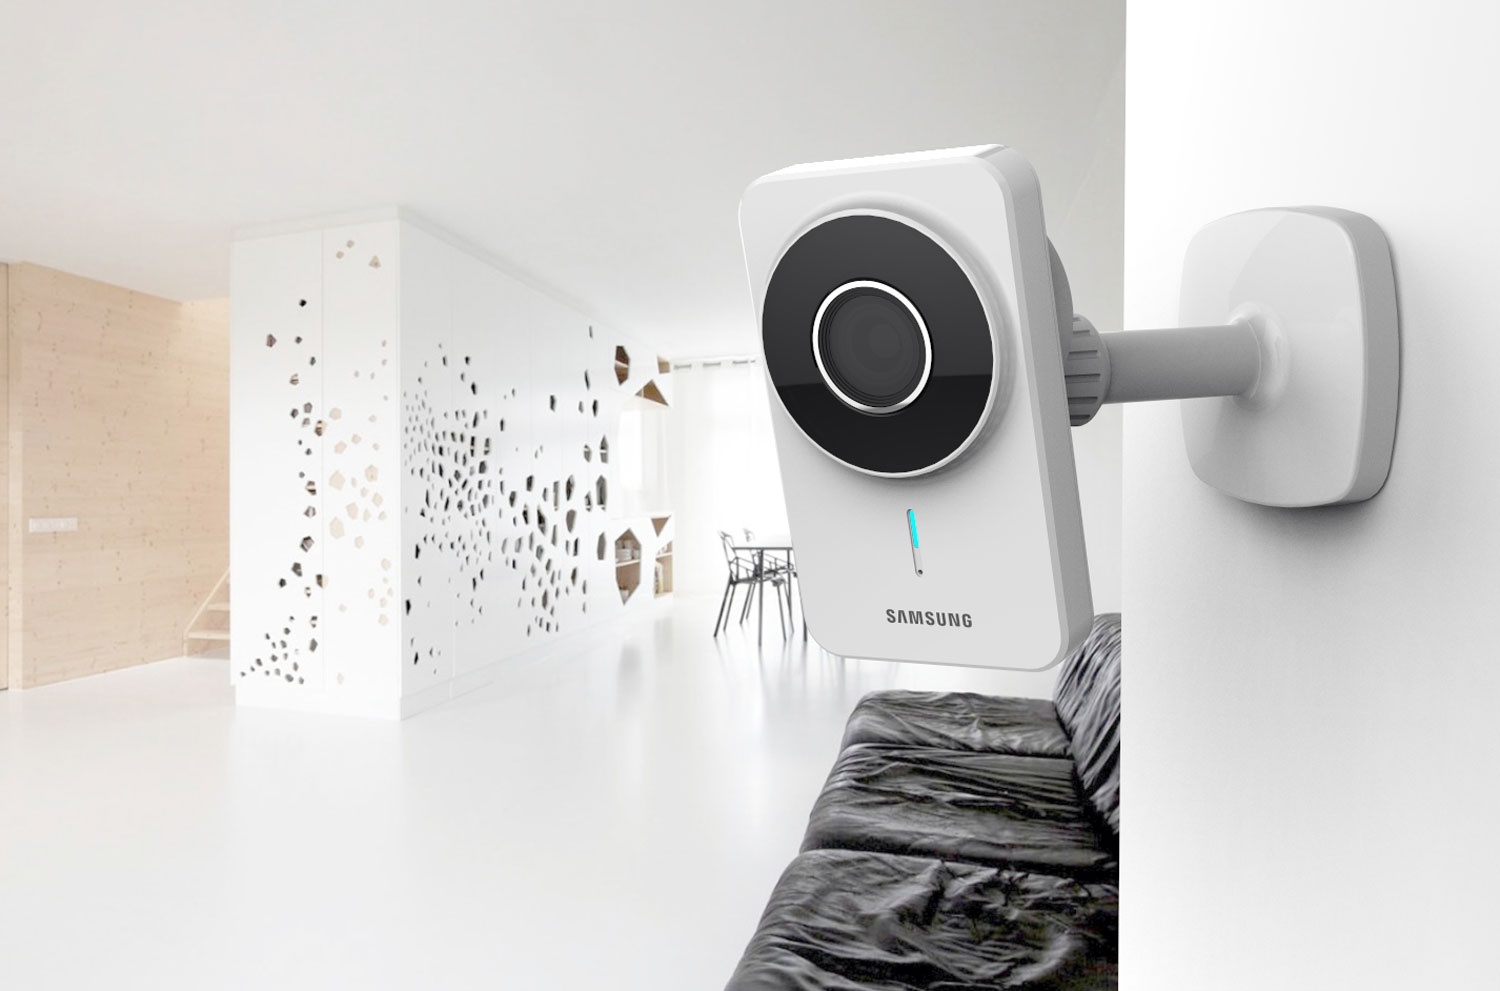 Ensure You Home Security With Wi-Fi Home Security System